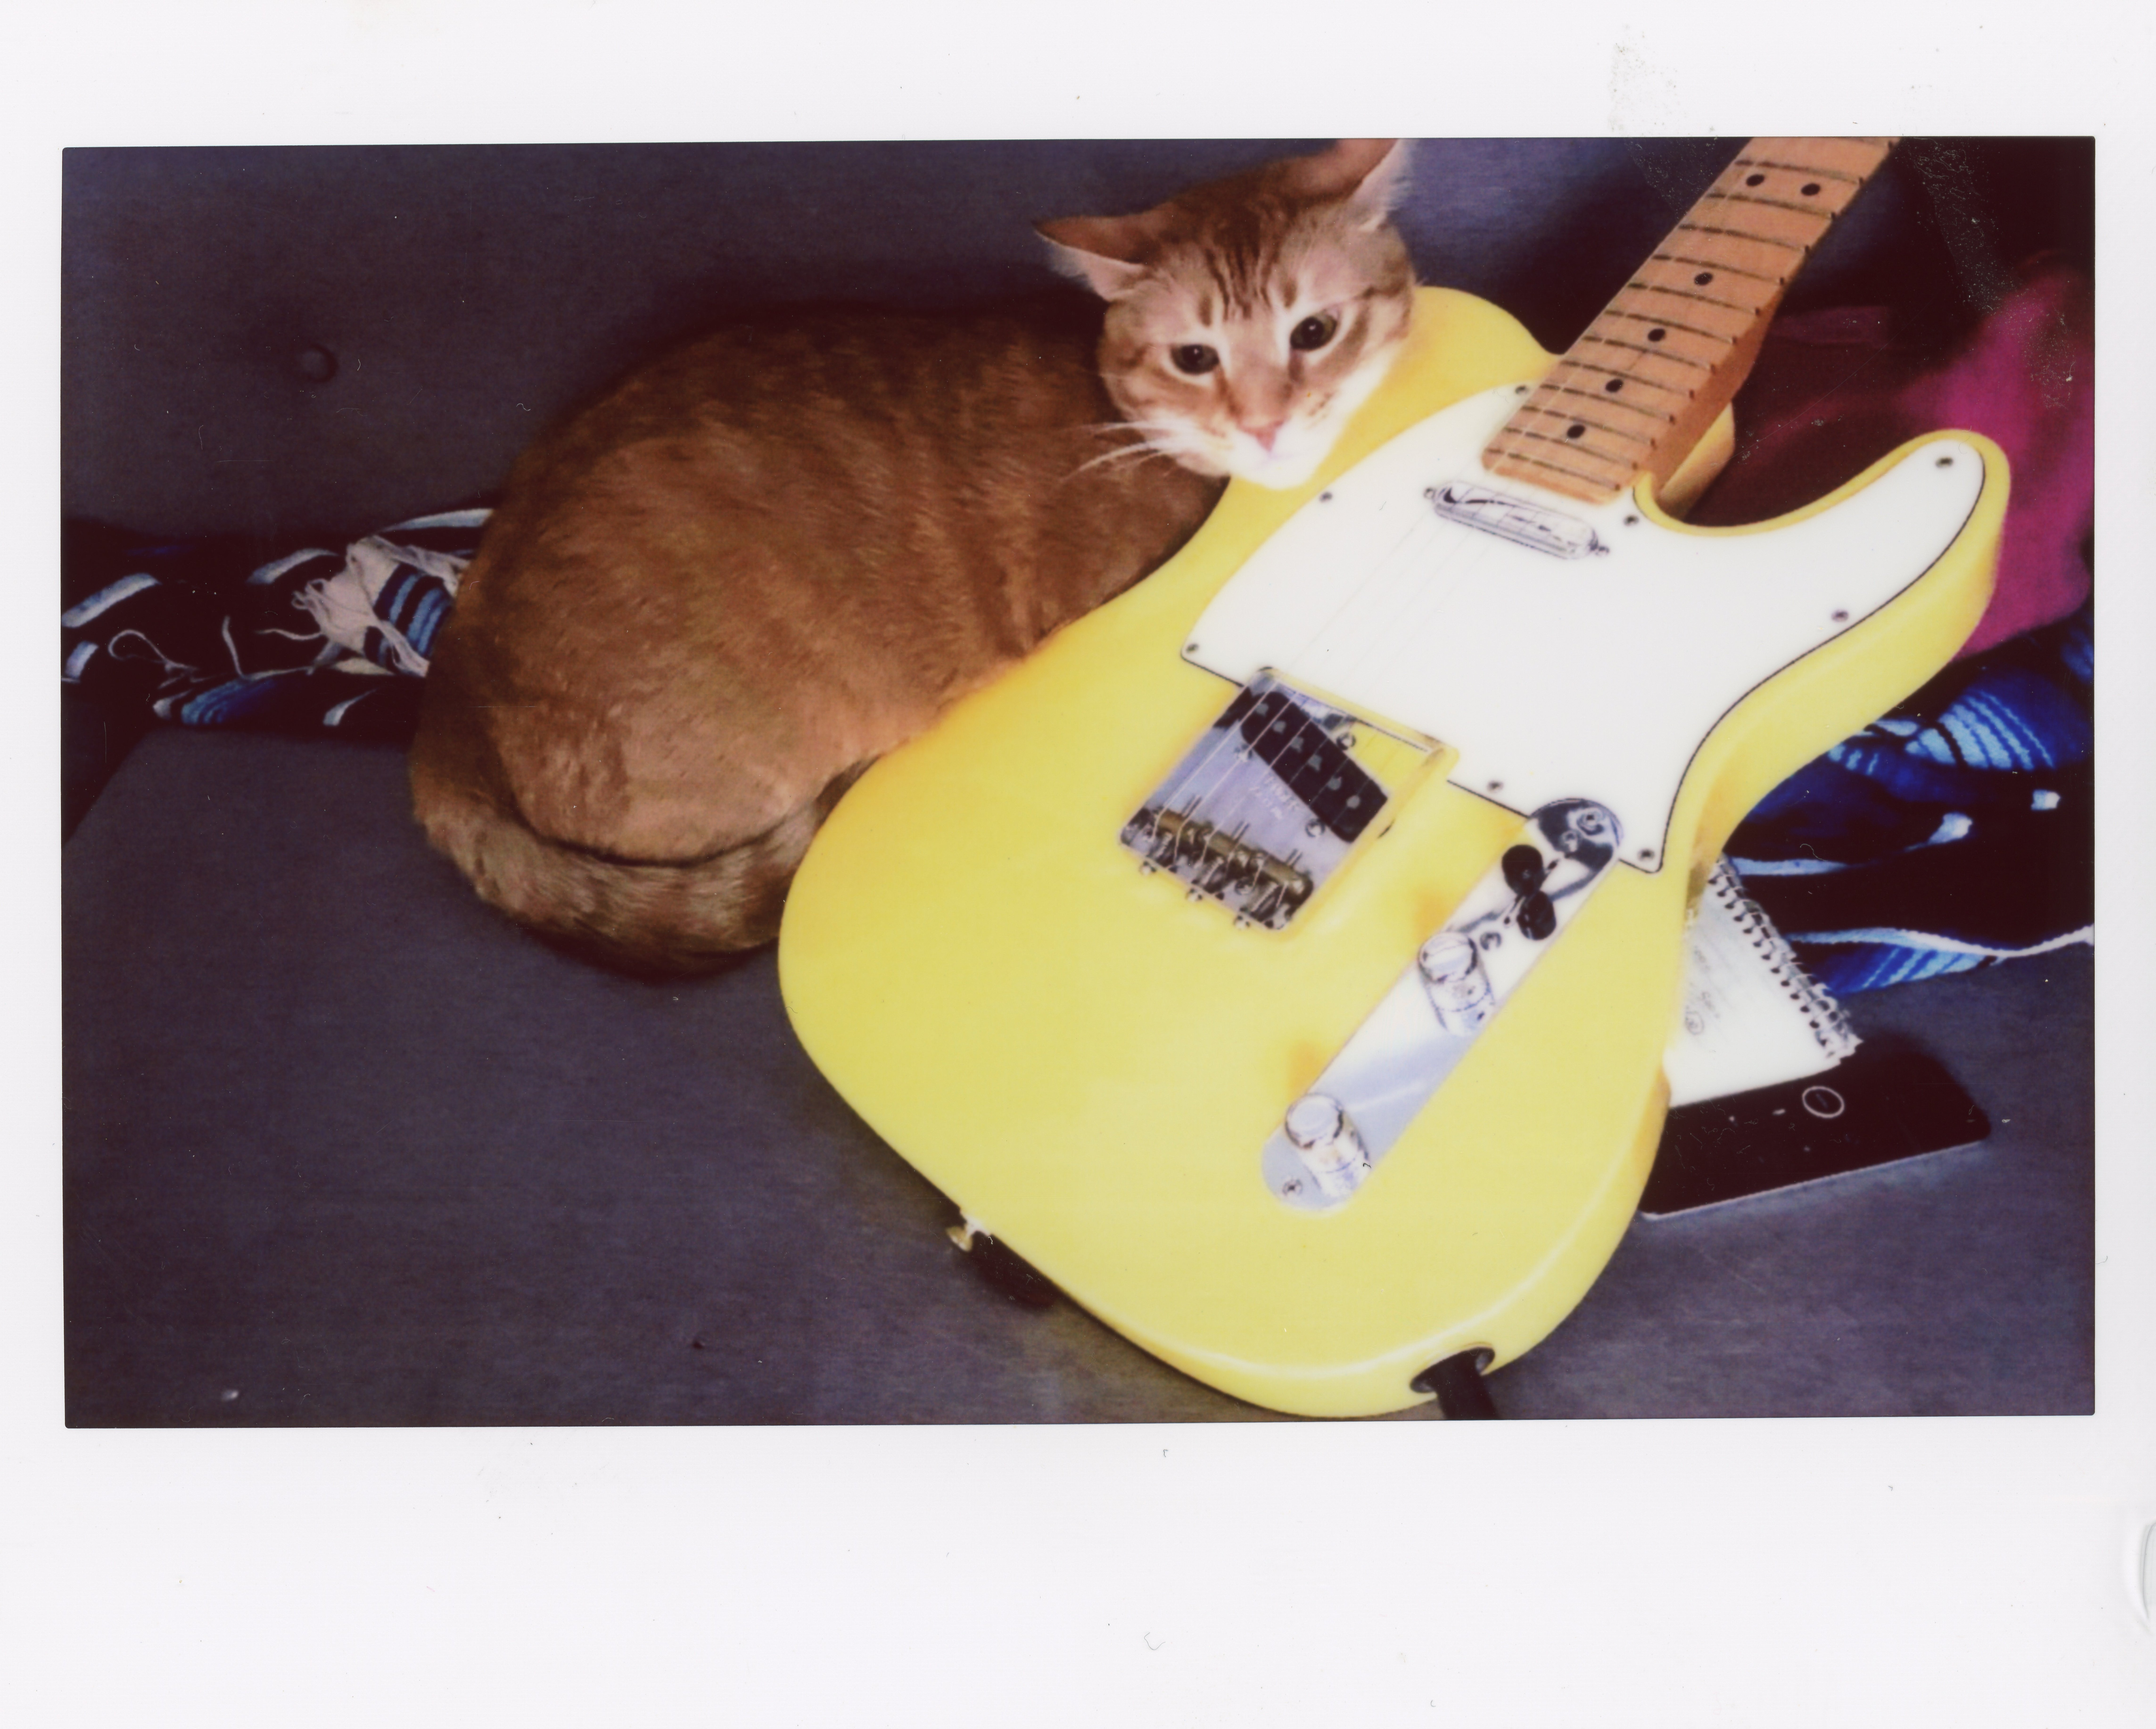 A sample print from the new Instax Link Wide printer